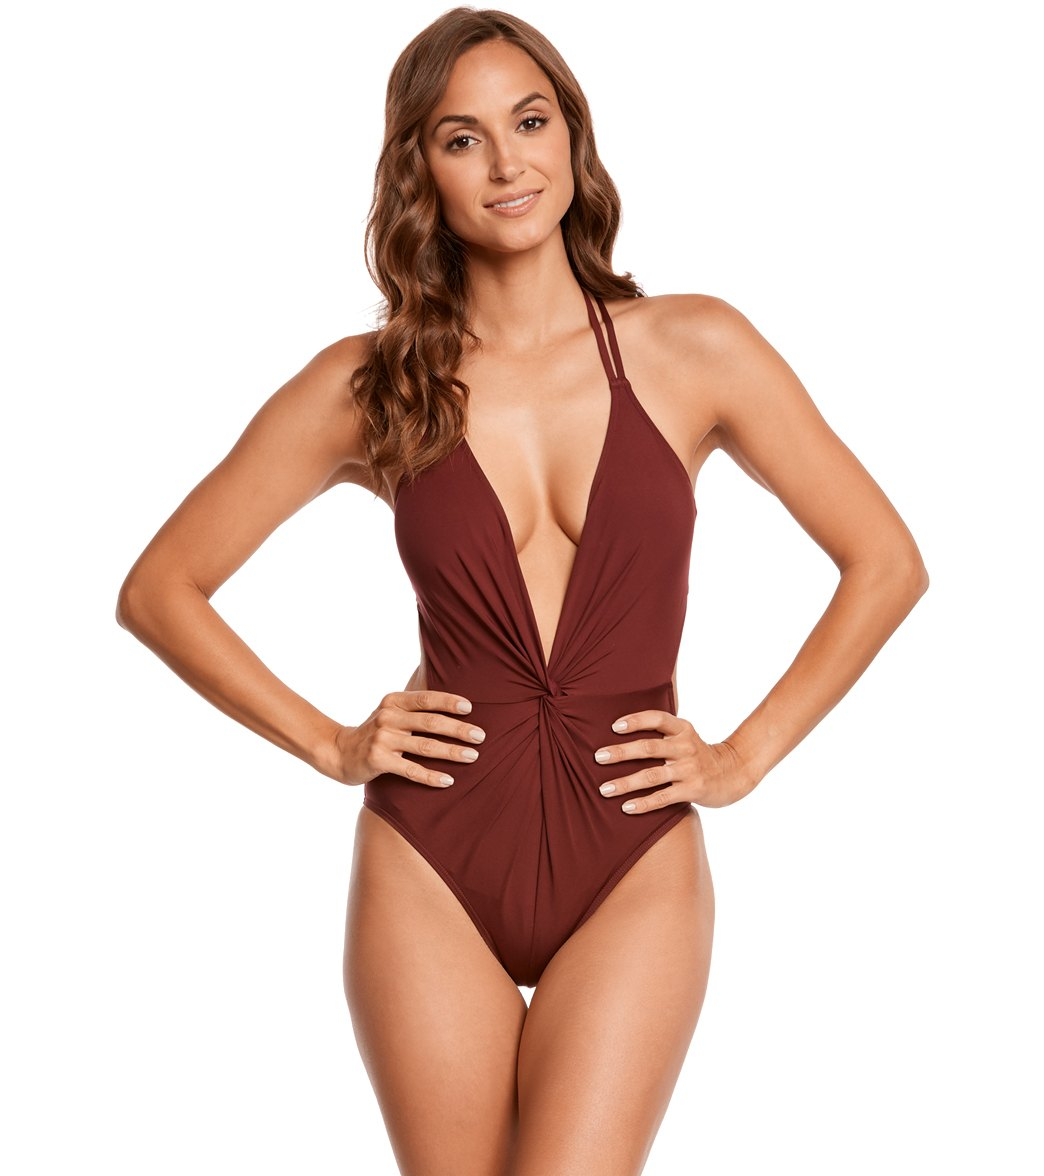 8094a2181d8e5 Kenneth Cole Sexy Solids Twist Plunge Halter One Piece Swimsuit at  SwimOutlet.com - Free Shipping